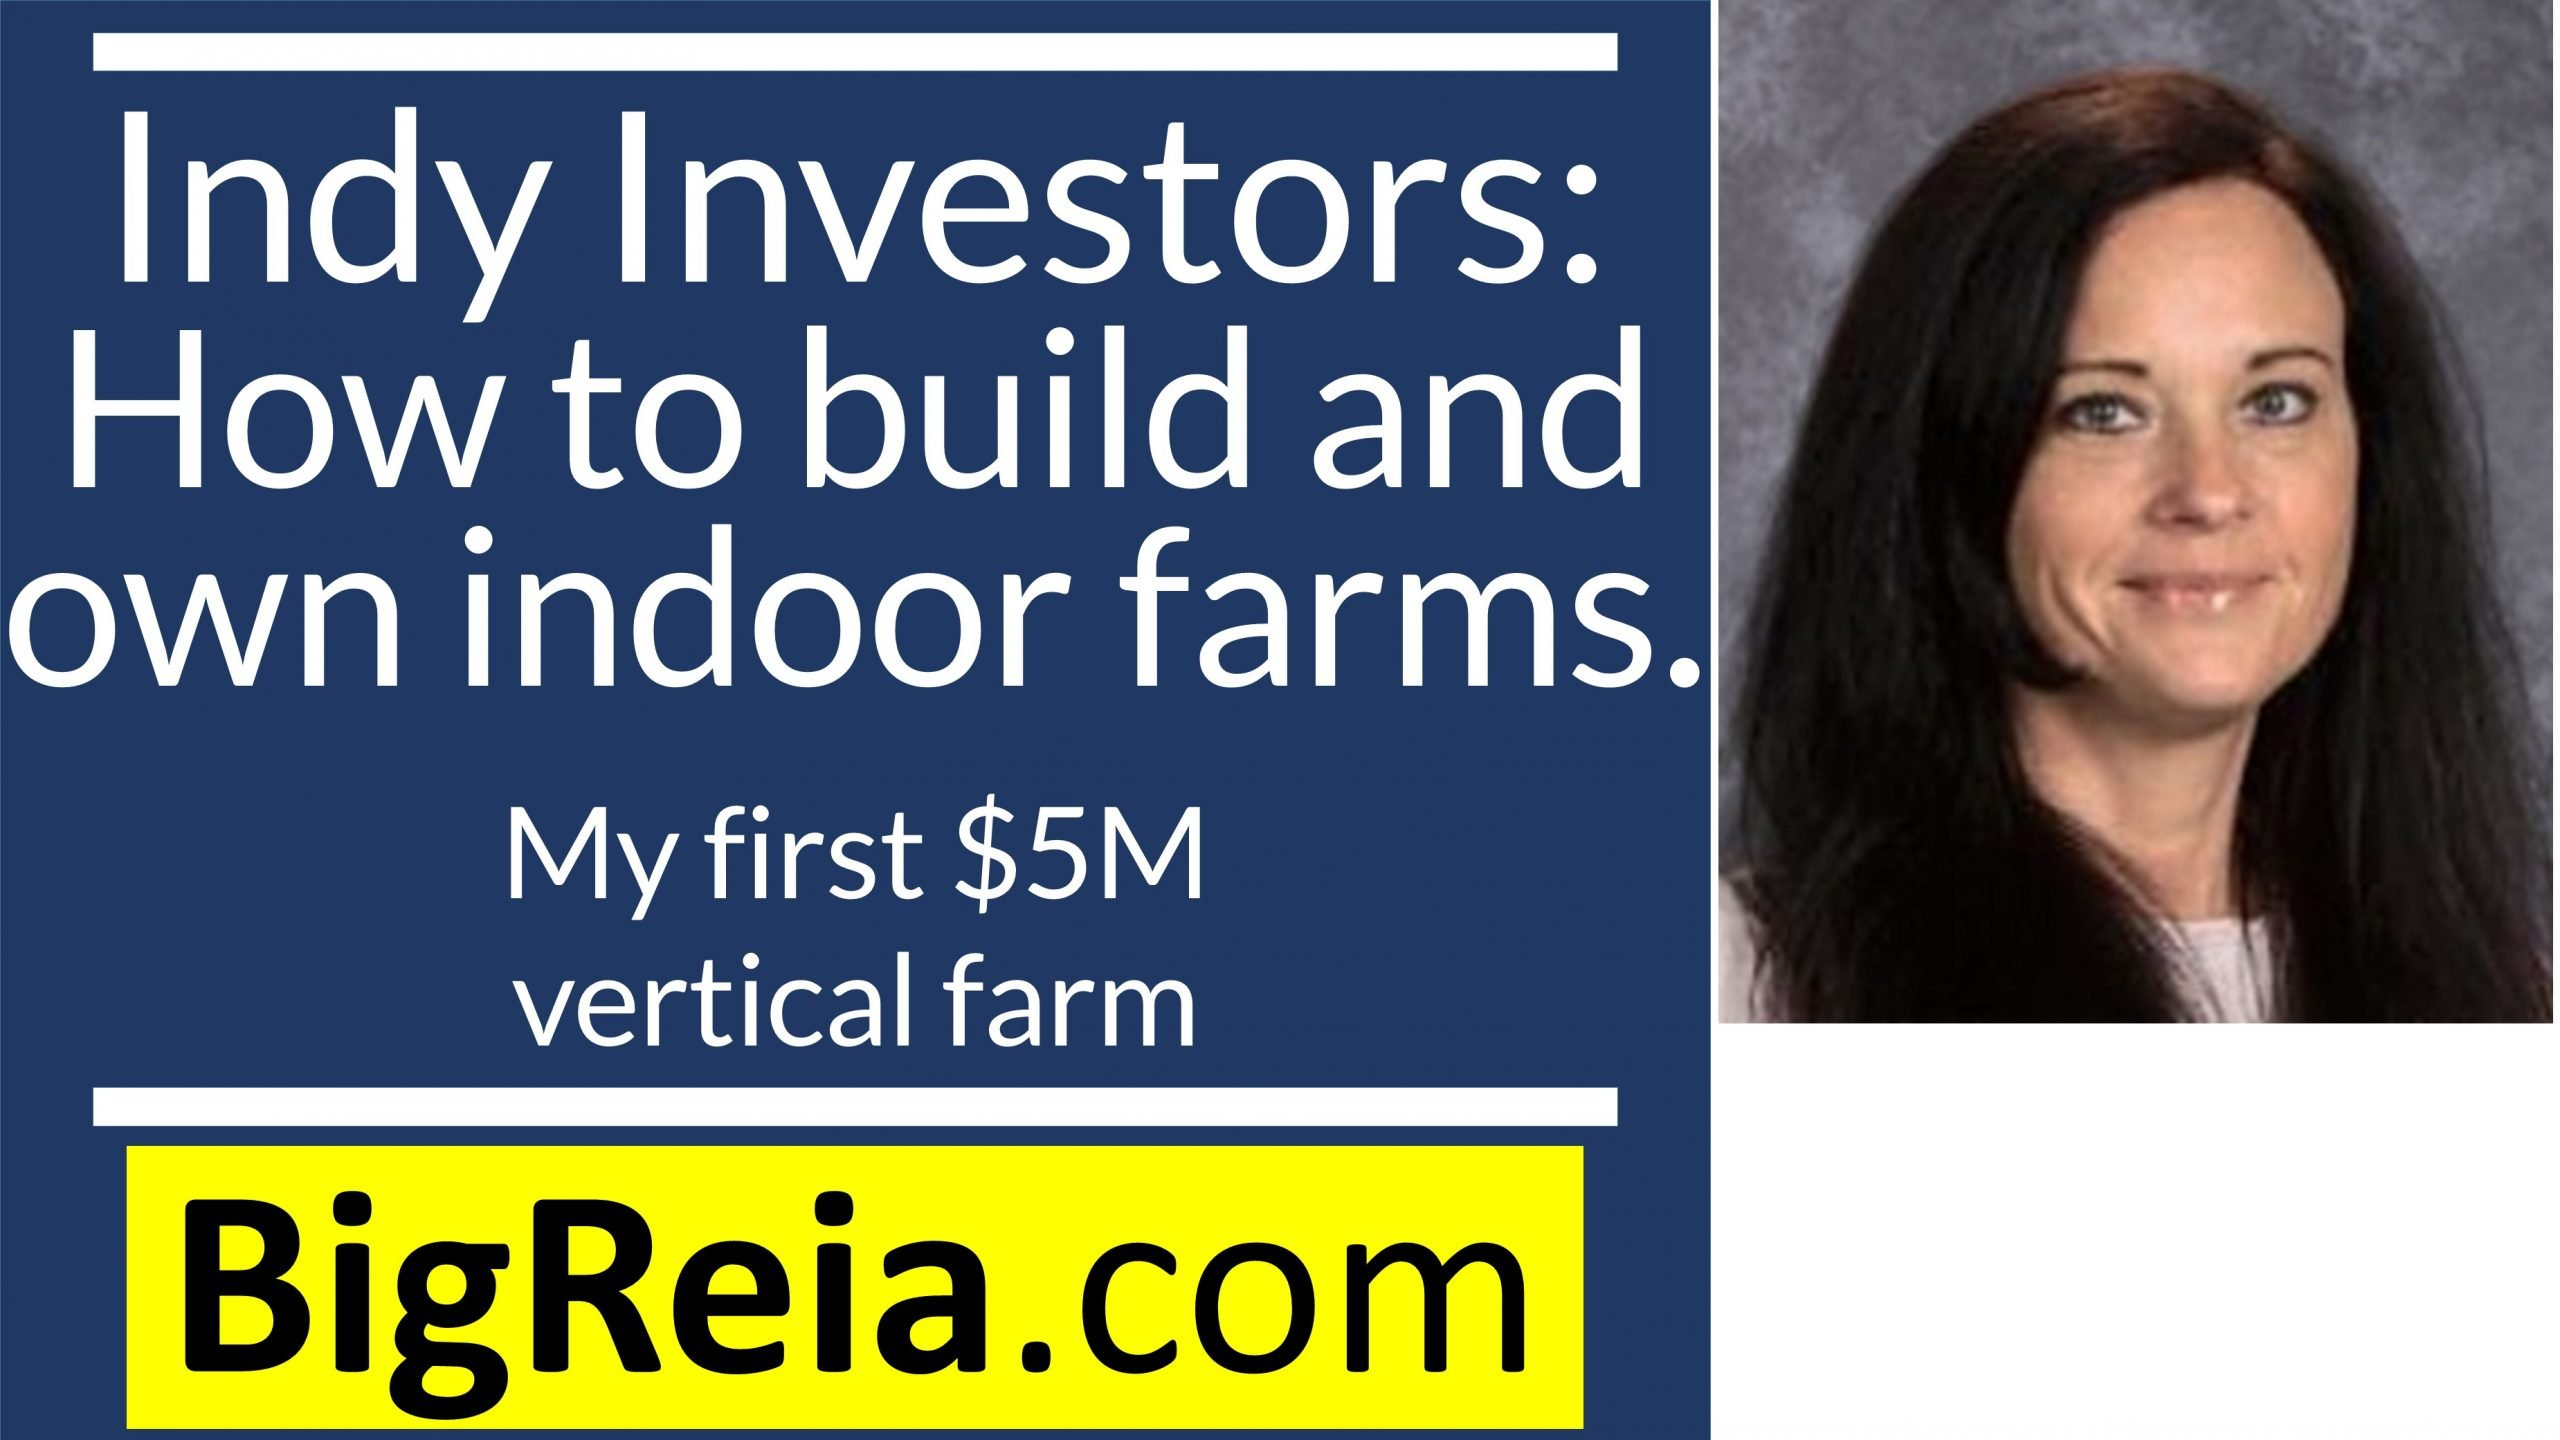 Indy real estate investors here's how to help inner cities: start and own $5M indoor vertical farms zero down.